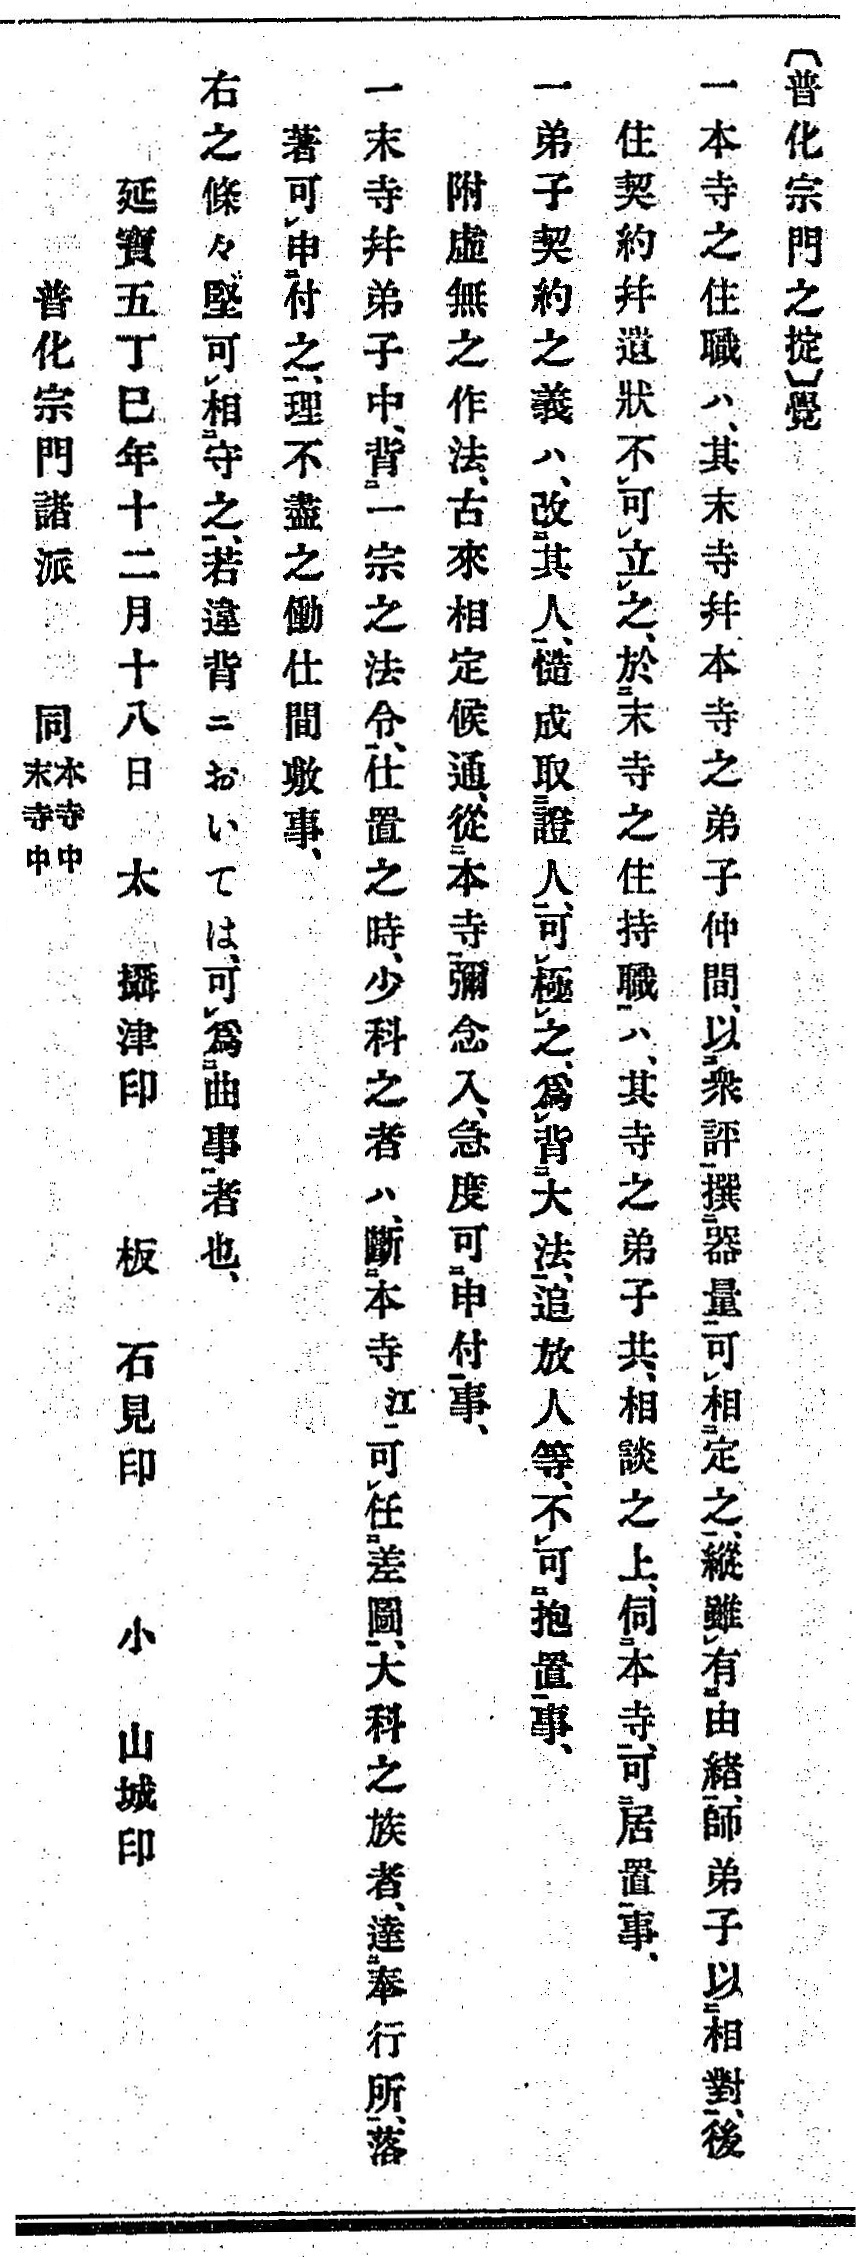 1678-1-11 Enpō 5 Oboe document reproduction printed in Koji Ruien, 1880 edition